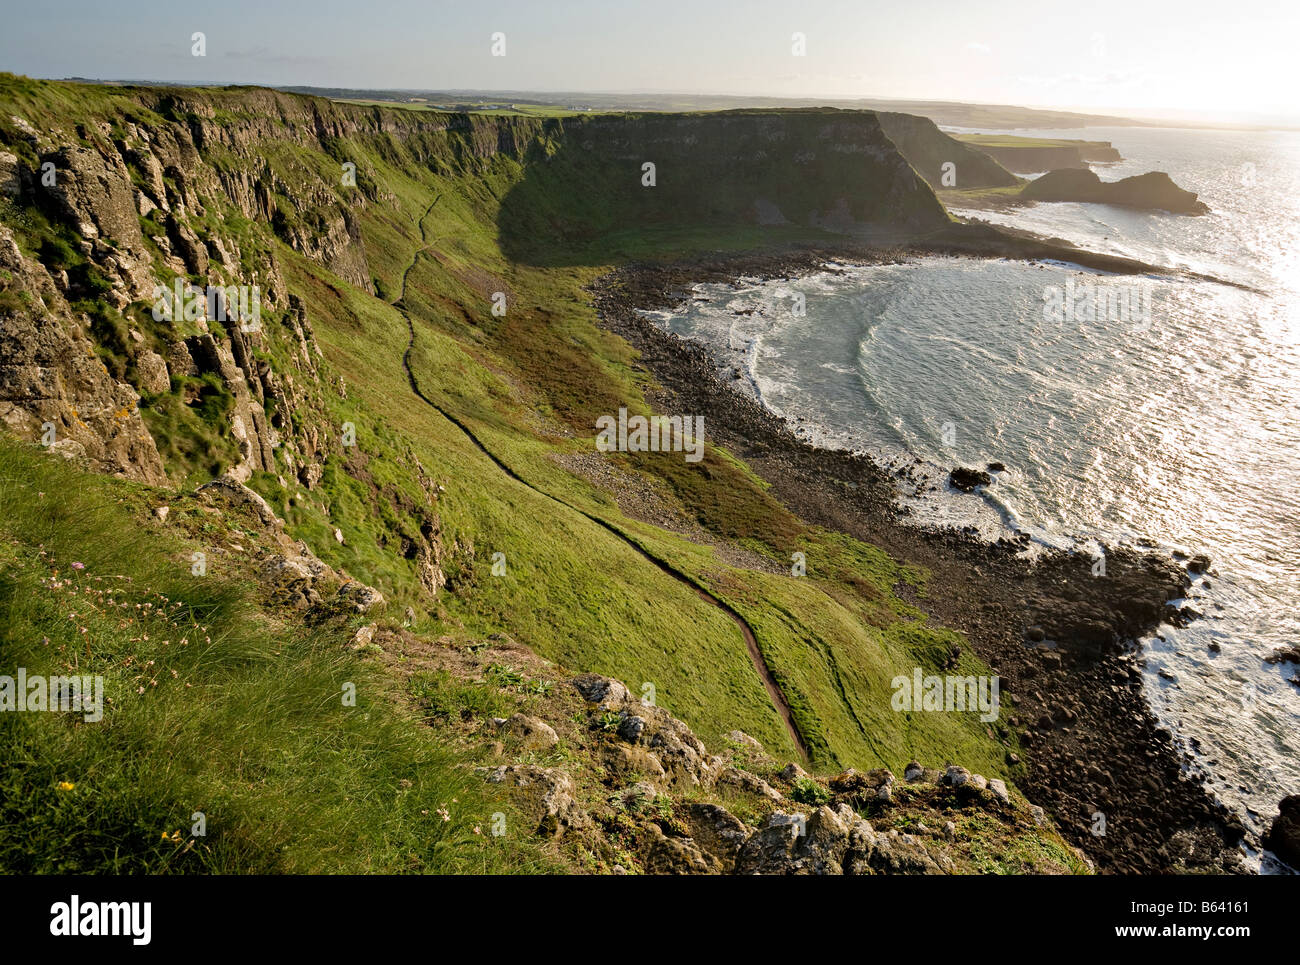 Cliffs and Headlands looking west of the Causeway. The cliff above and the headlands beyond the path to the giant's - Stock Image